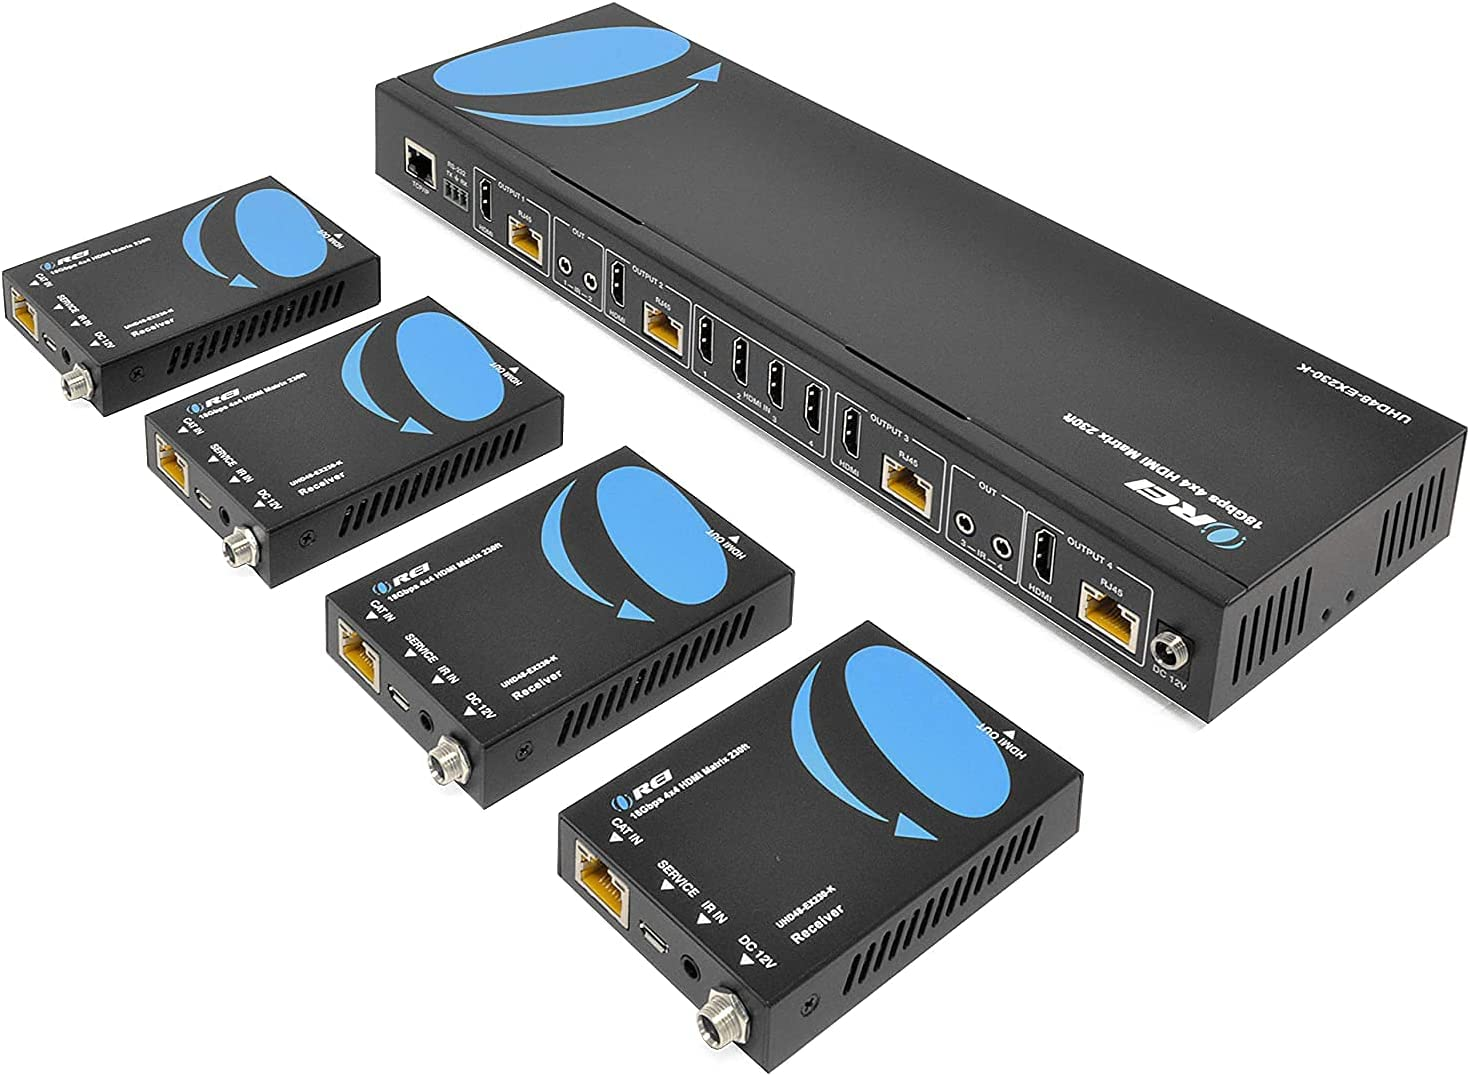 4K 4x4 HDMI Extender Matrix by OREI - UltraHD 4K @ 60Hz 4:4:4 Over Single CAT5e/6/7 Cable with HDR Switcher & IR Control, RS-232 - Up to 230 Ft - 1080P Downscale - 4 x Loop Out - 4 Receivers Included